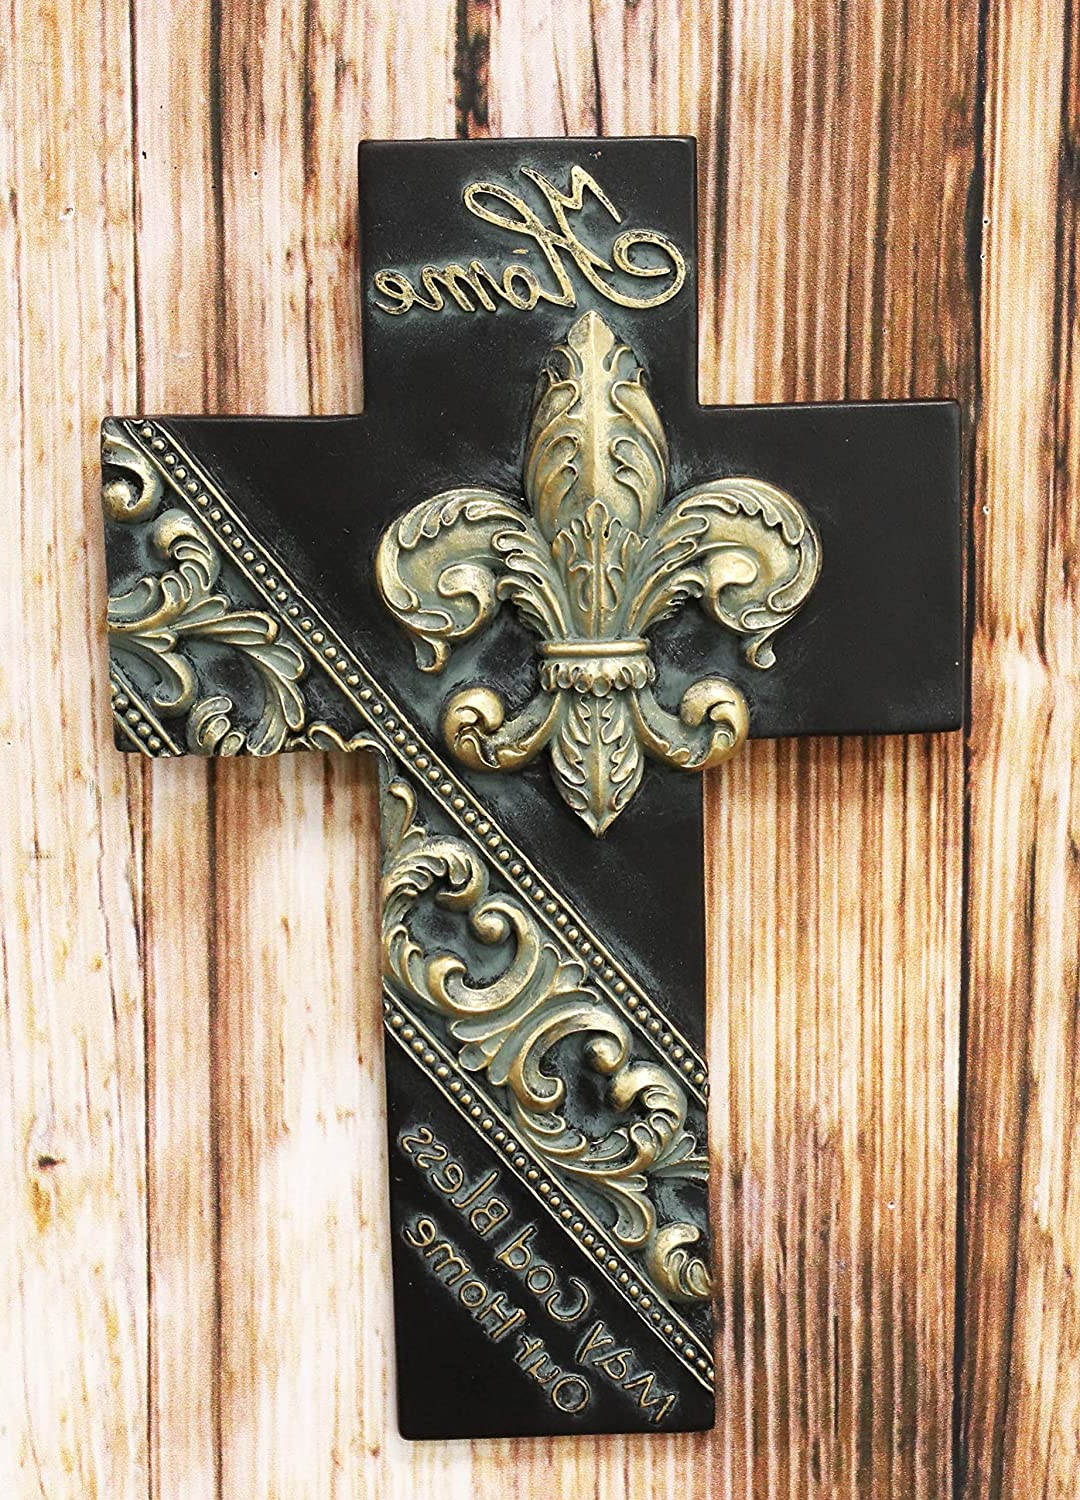 """Well Liked Scroll Wall Décor By Fleur De Lis Living With Ebros Rustic Southwest Fleur De Lis With Tuscan Scroll Art May God Bless Our Home Wall Cross Decor Plaque 10"""" Tall French Royalty Christian Accent (View 11 of 20)"""